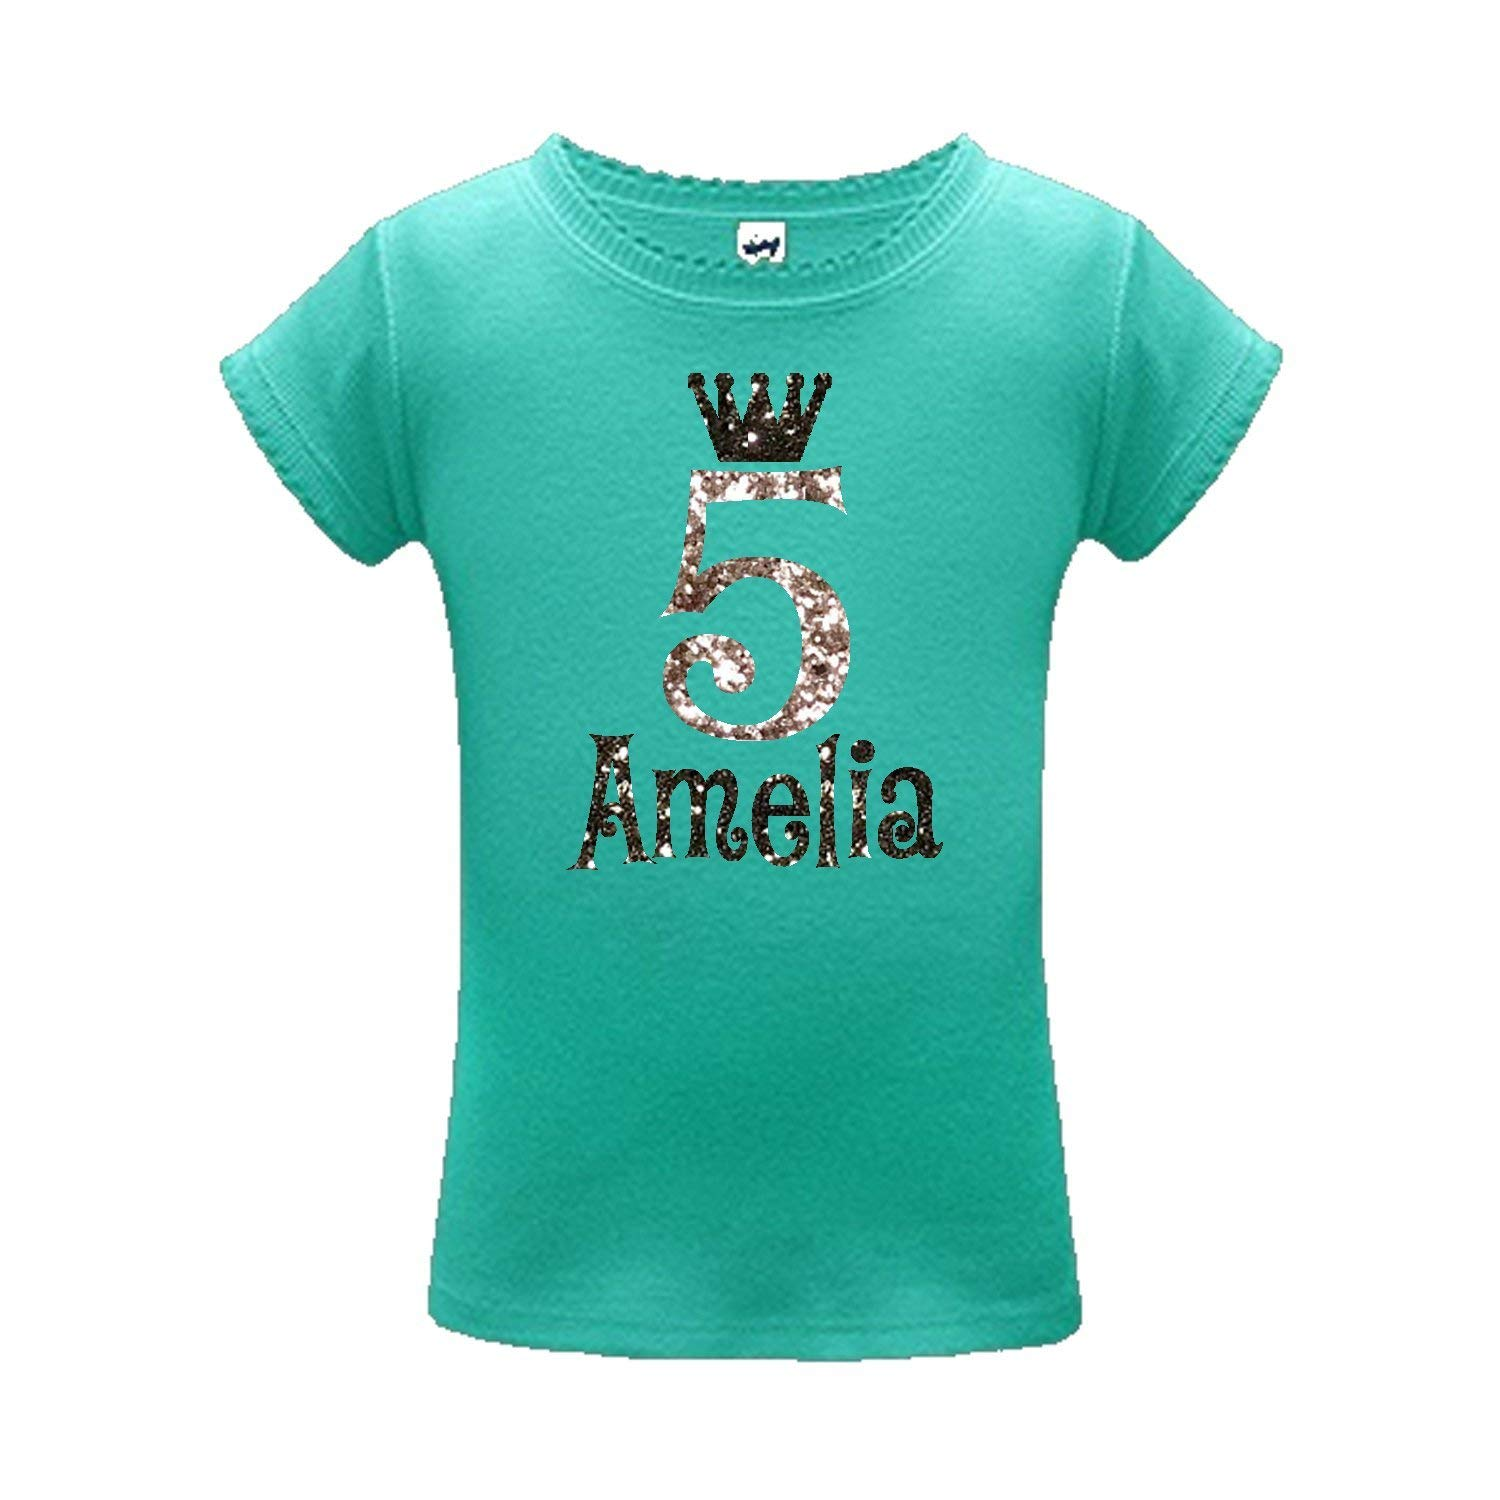 02370a7bd2cf Get Quotations · Personalized Name and Glitter Crown birthday glitter shirt  for girls